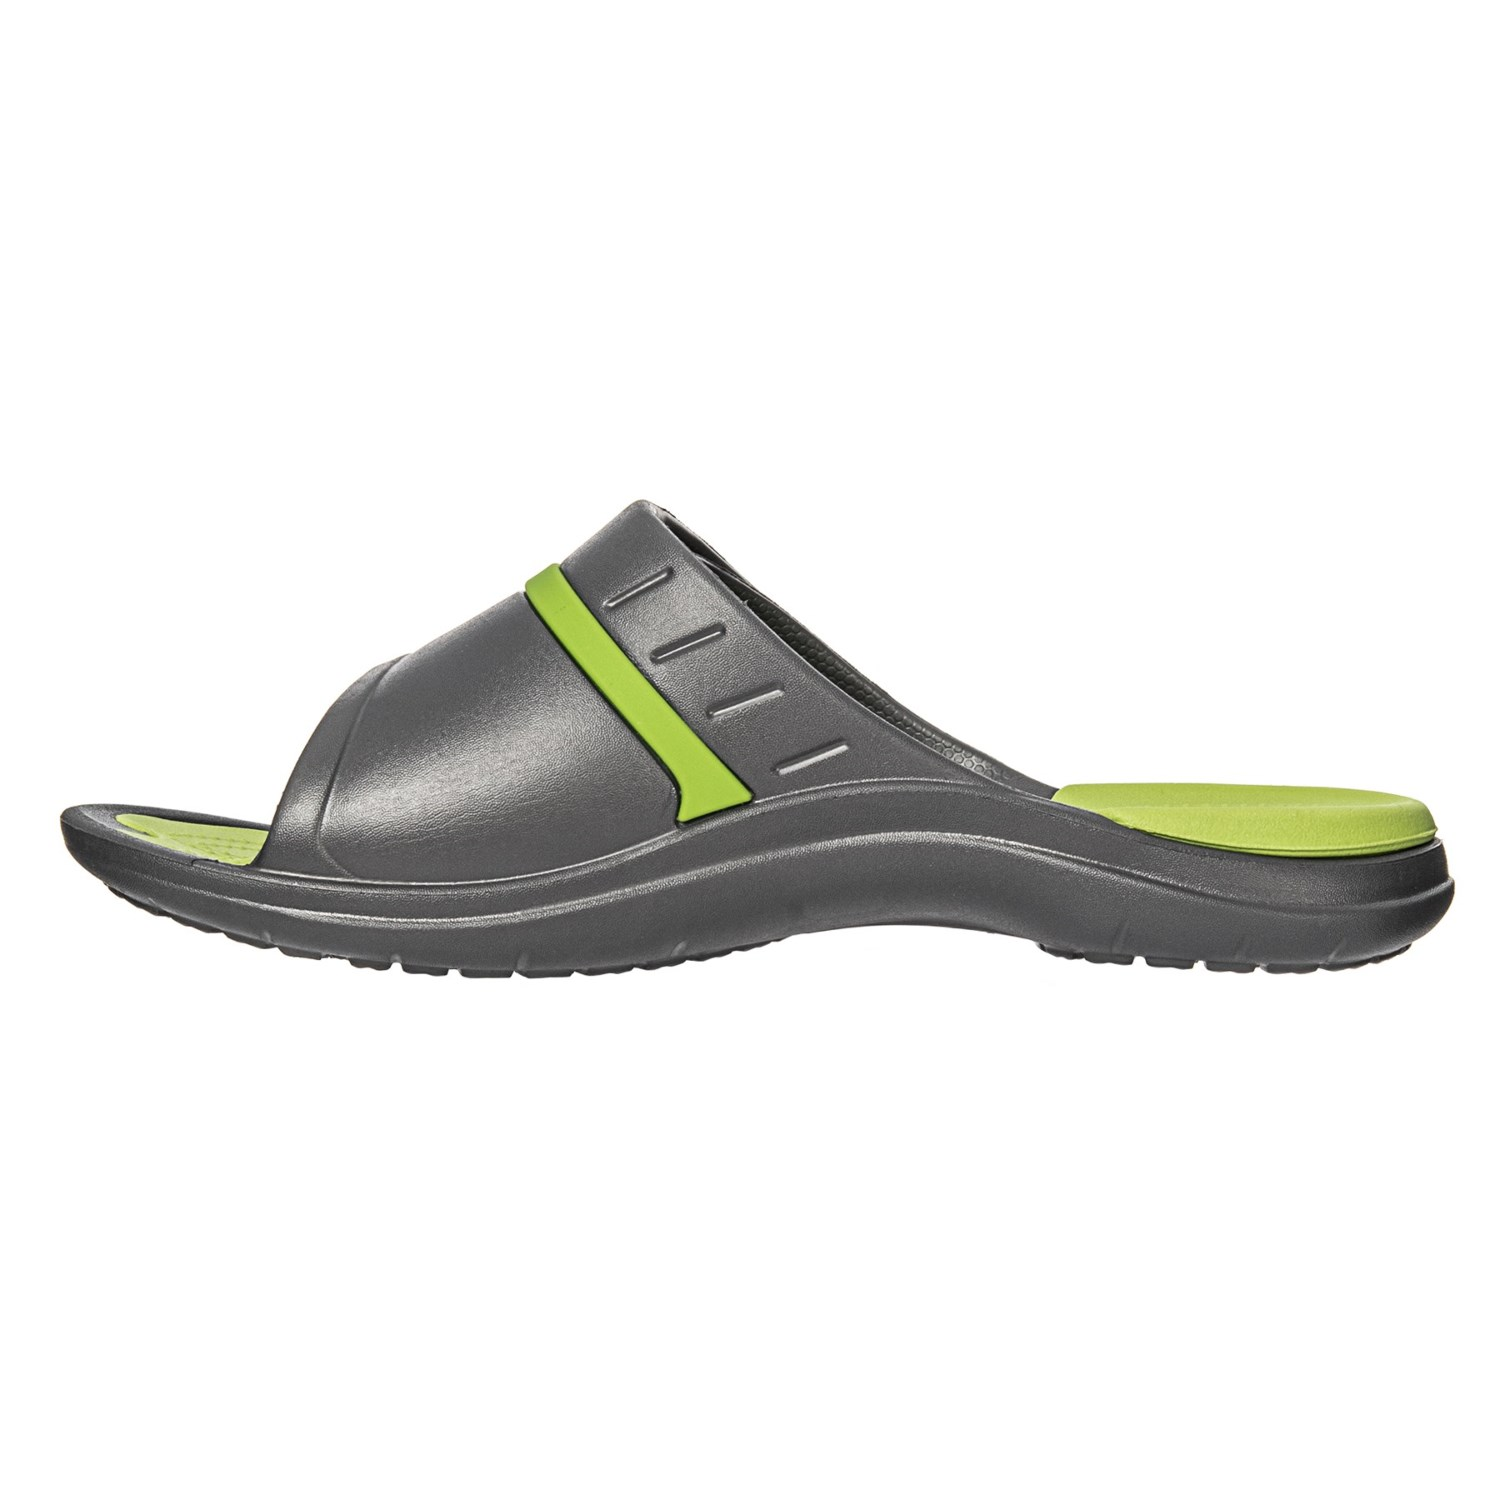 e89cf8ca8d5d Crocs Modi Sports Slide Sandals (For Men) - Save 46%